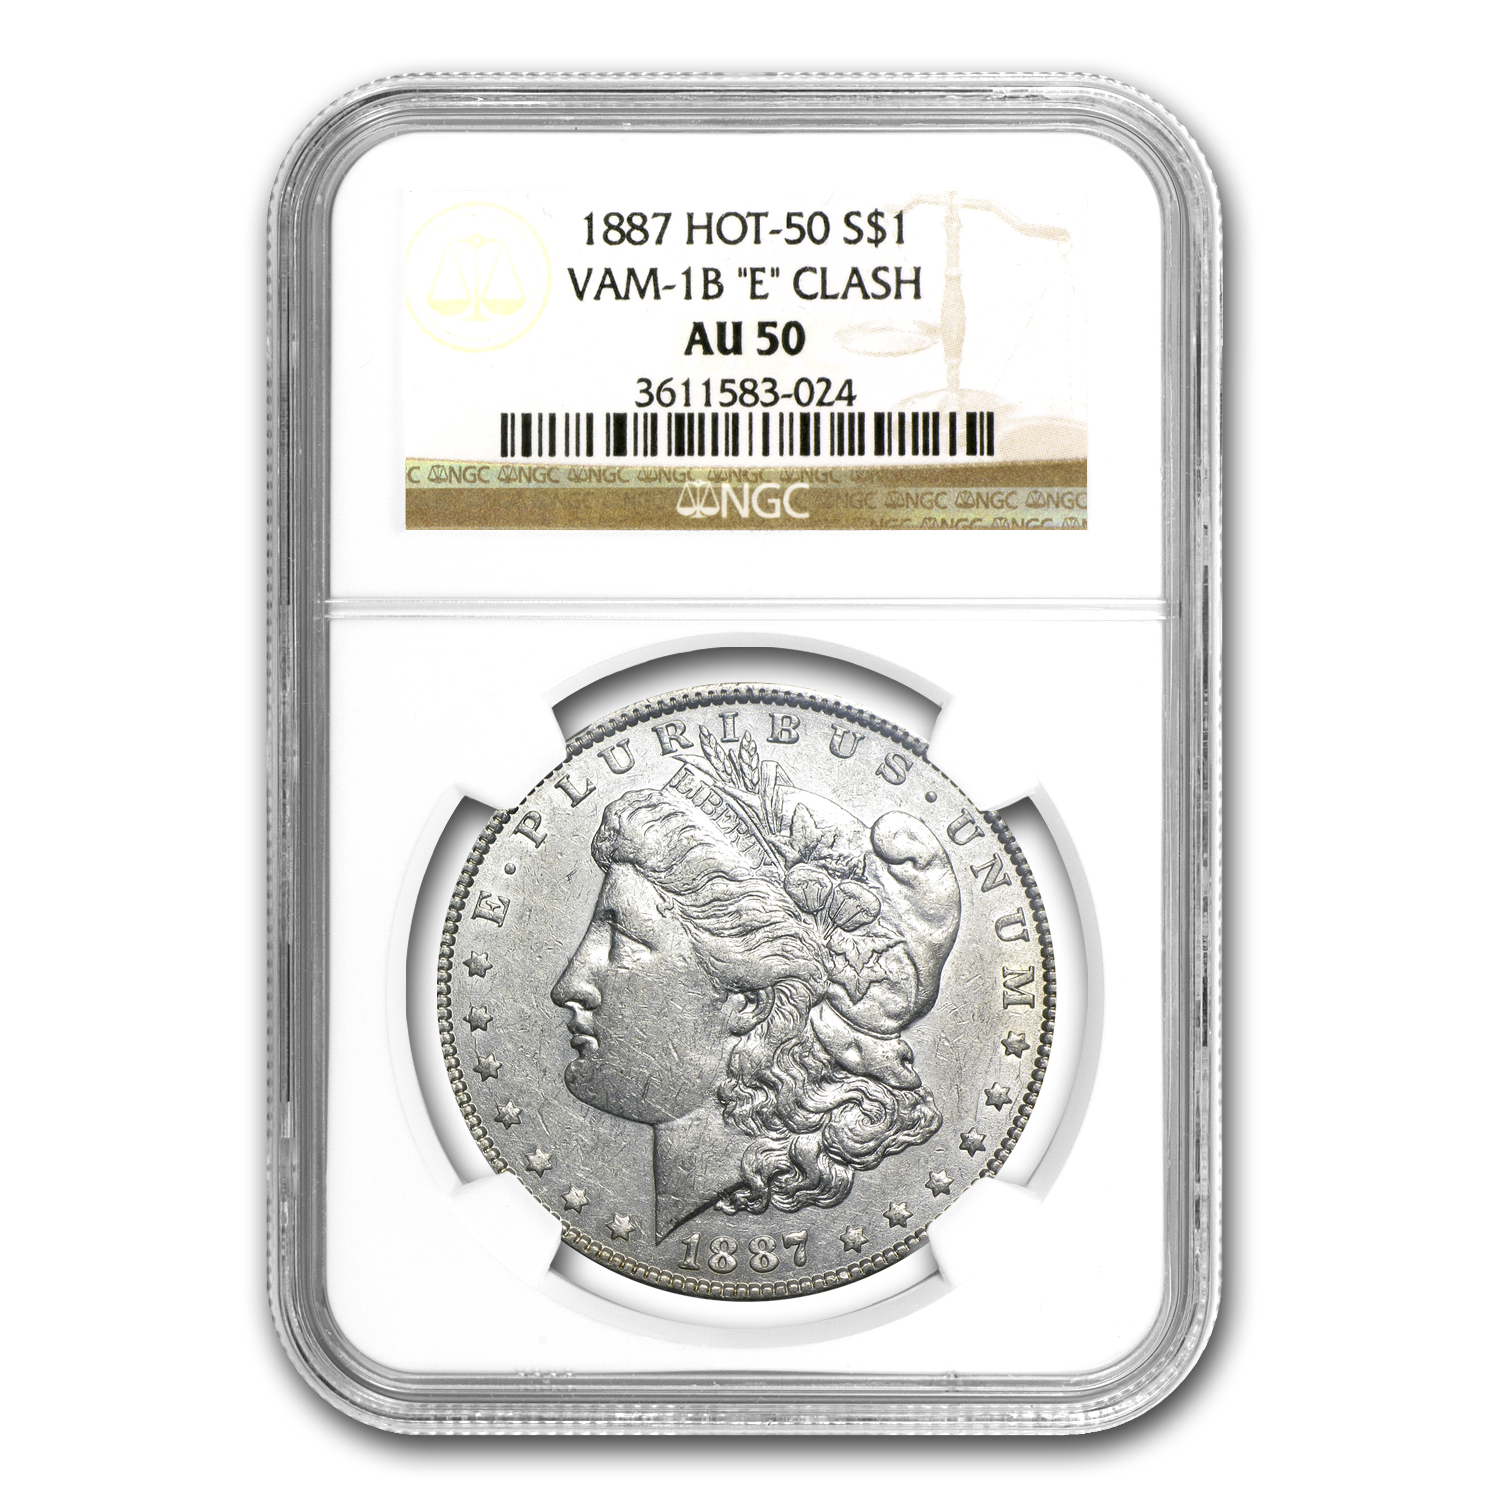 1887 Morgan Dollar AU-50 NGC (VAM-1B, Partial E Rev, Hot-50)